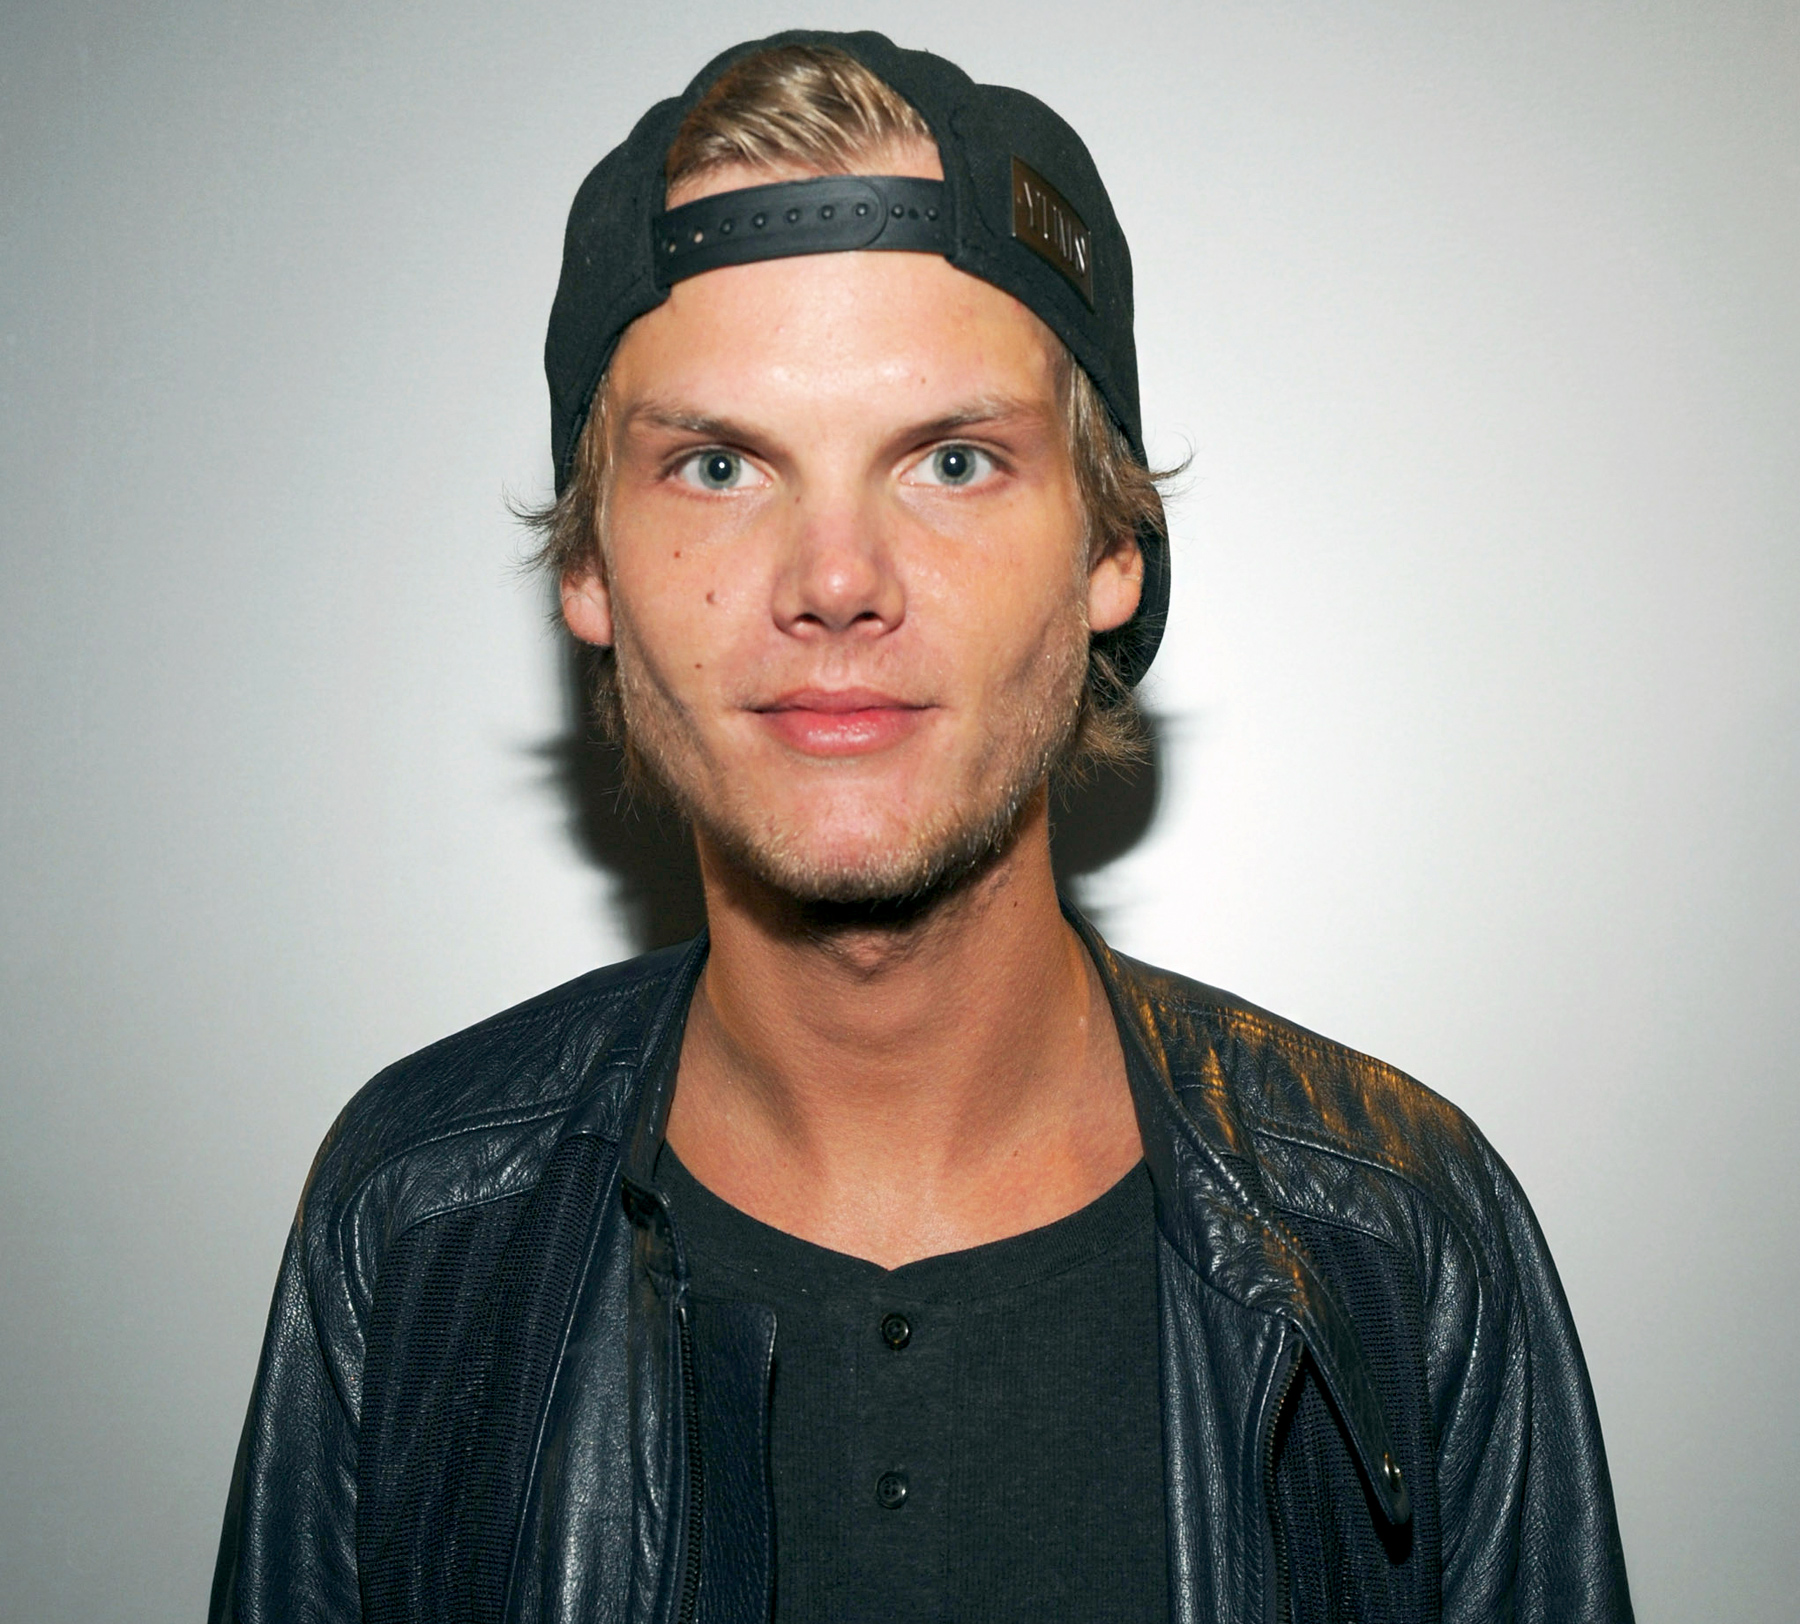 Apr 20,  · Avicii was in Muscat, Oman, according to a representative. Tim Bergling, the Grammy nominated Swedish DJ better known as Avicii, died Friday, .